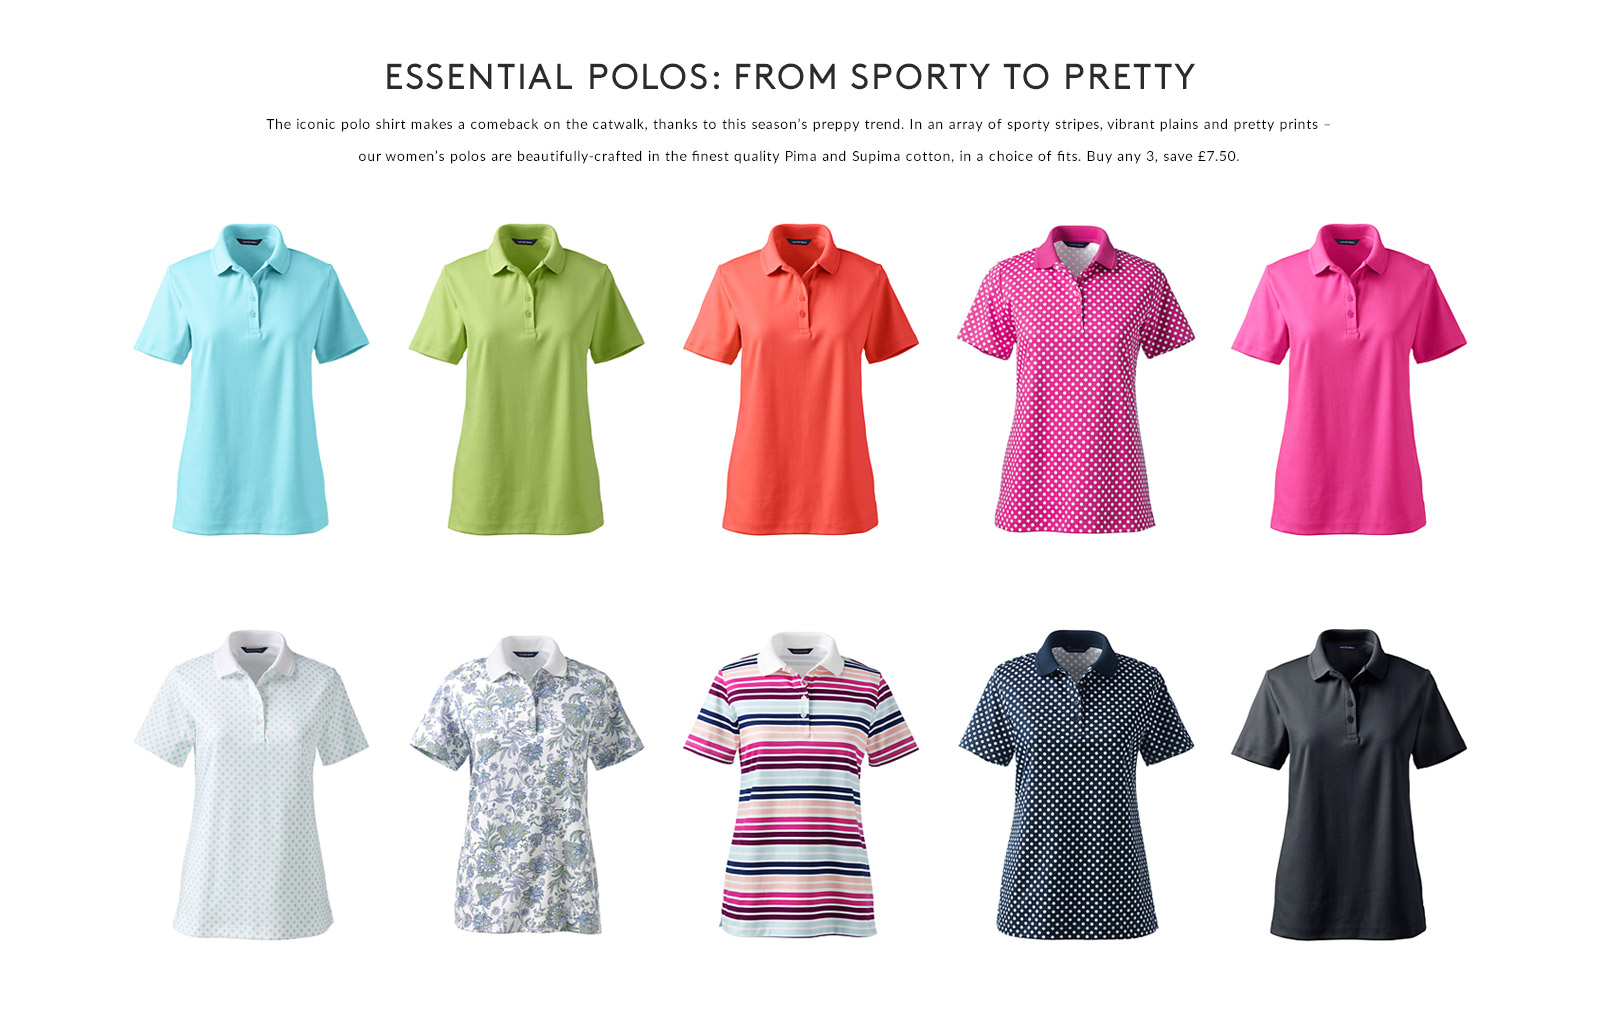 ESSENTIAL POLOS: FROM SPORTY TO PRETTY